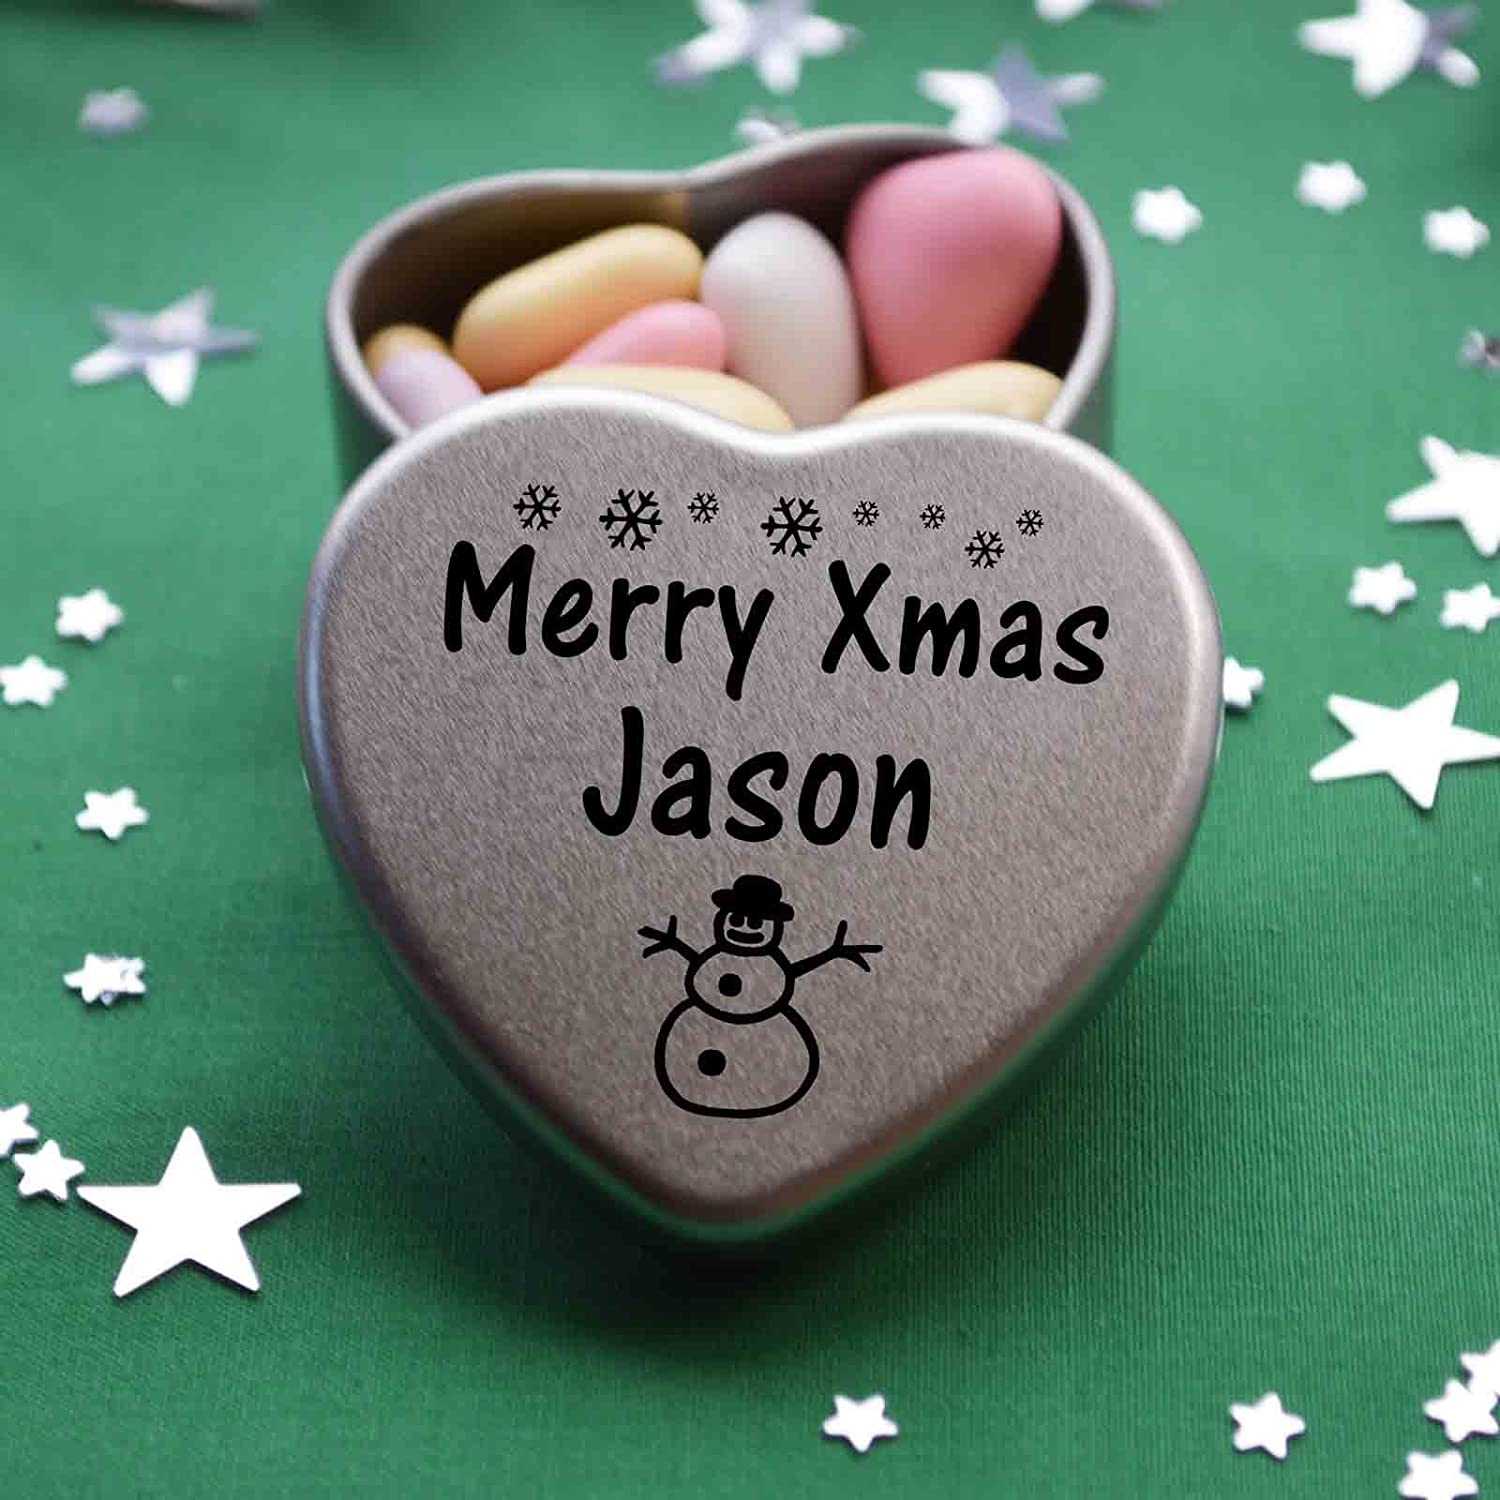 Merry Xmas Jason Mini Heart Gift Tin with Chocolates Fits Beautifully in the palm of your hand. Great Christmas Present for Jason Makes the perfect Stocking Filler or Card alternative. Tin Dimensions 45mmx45mmx20mm. Three designs Available, Father Christm